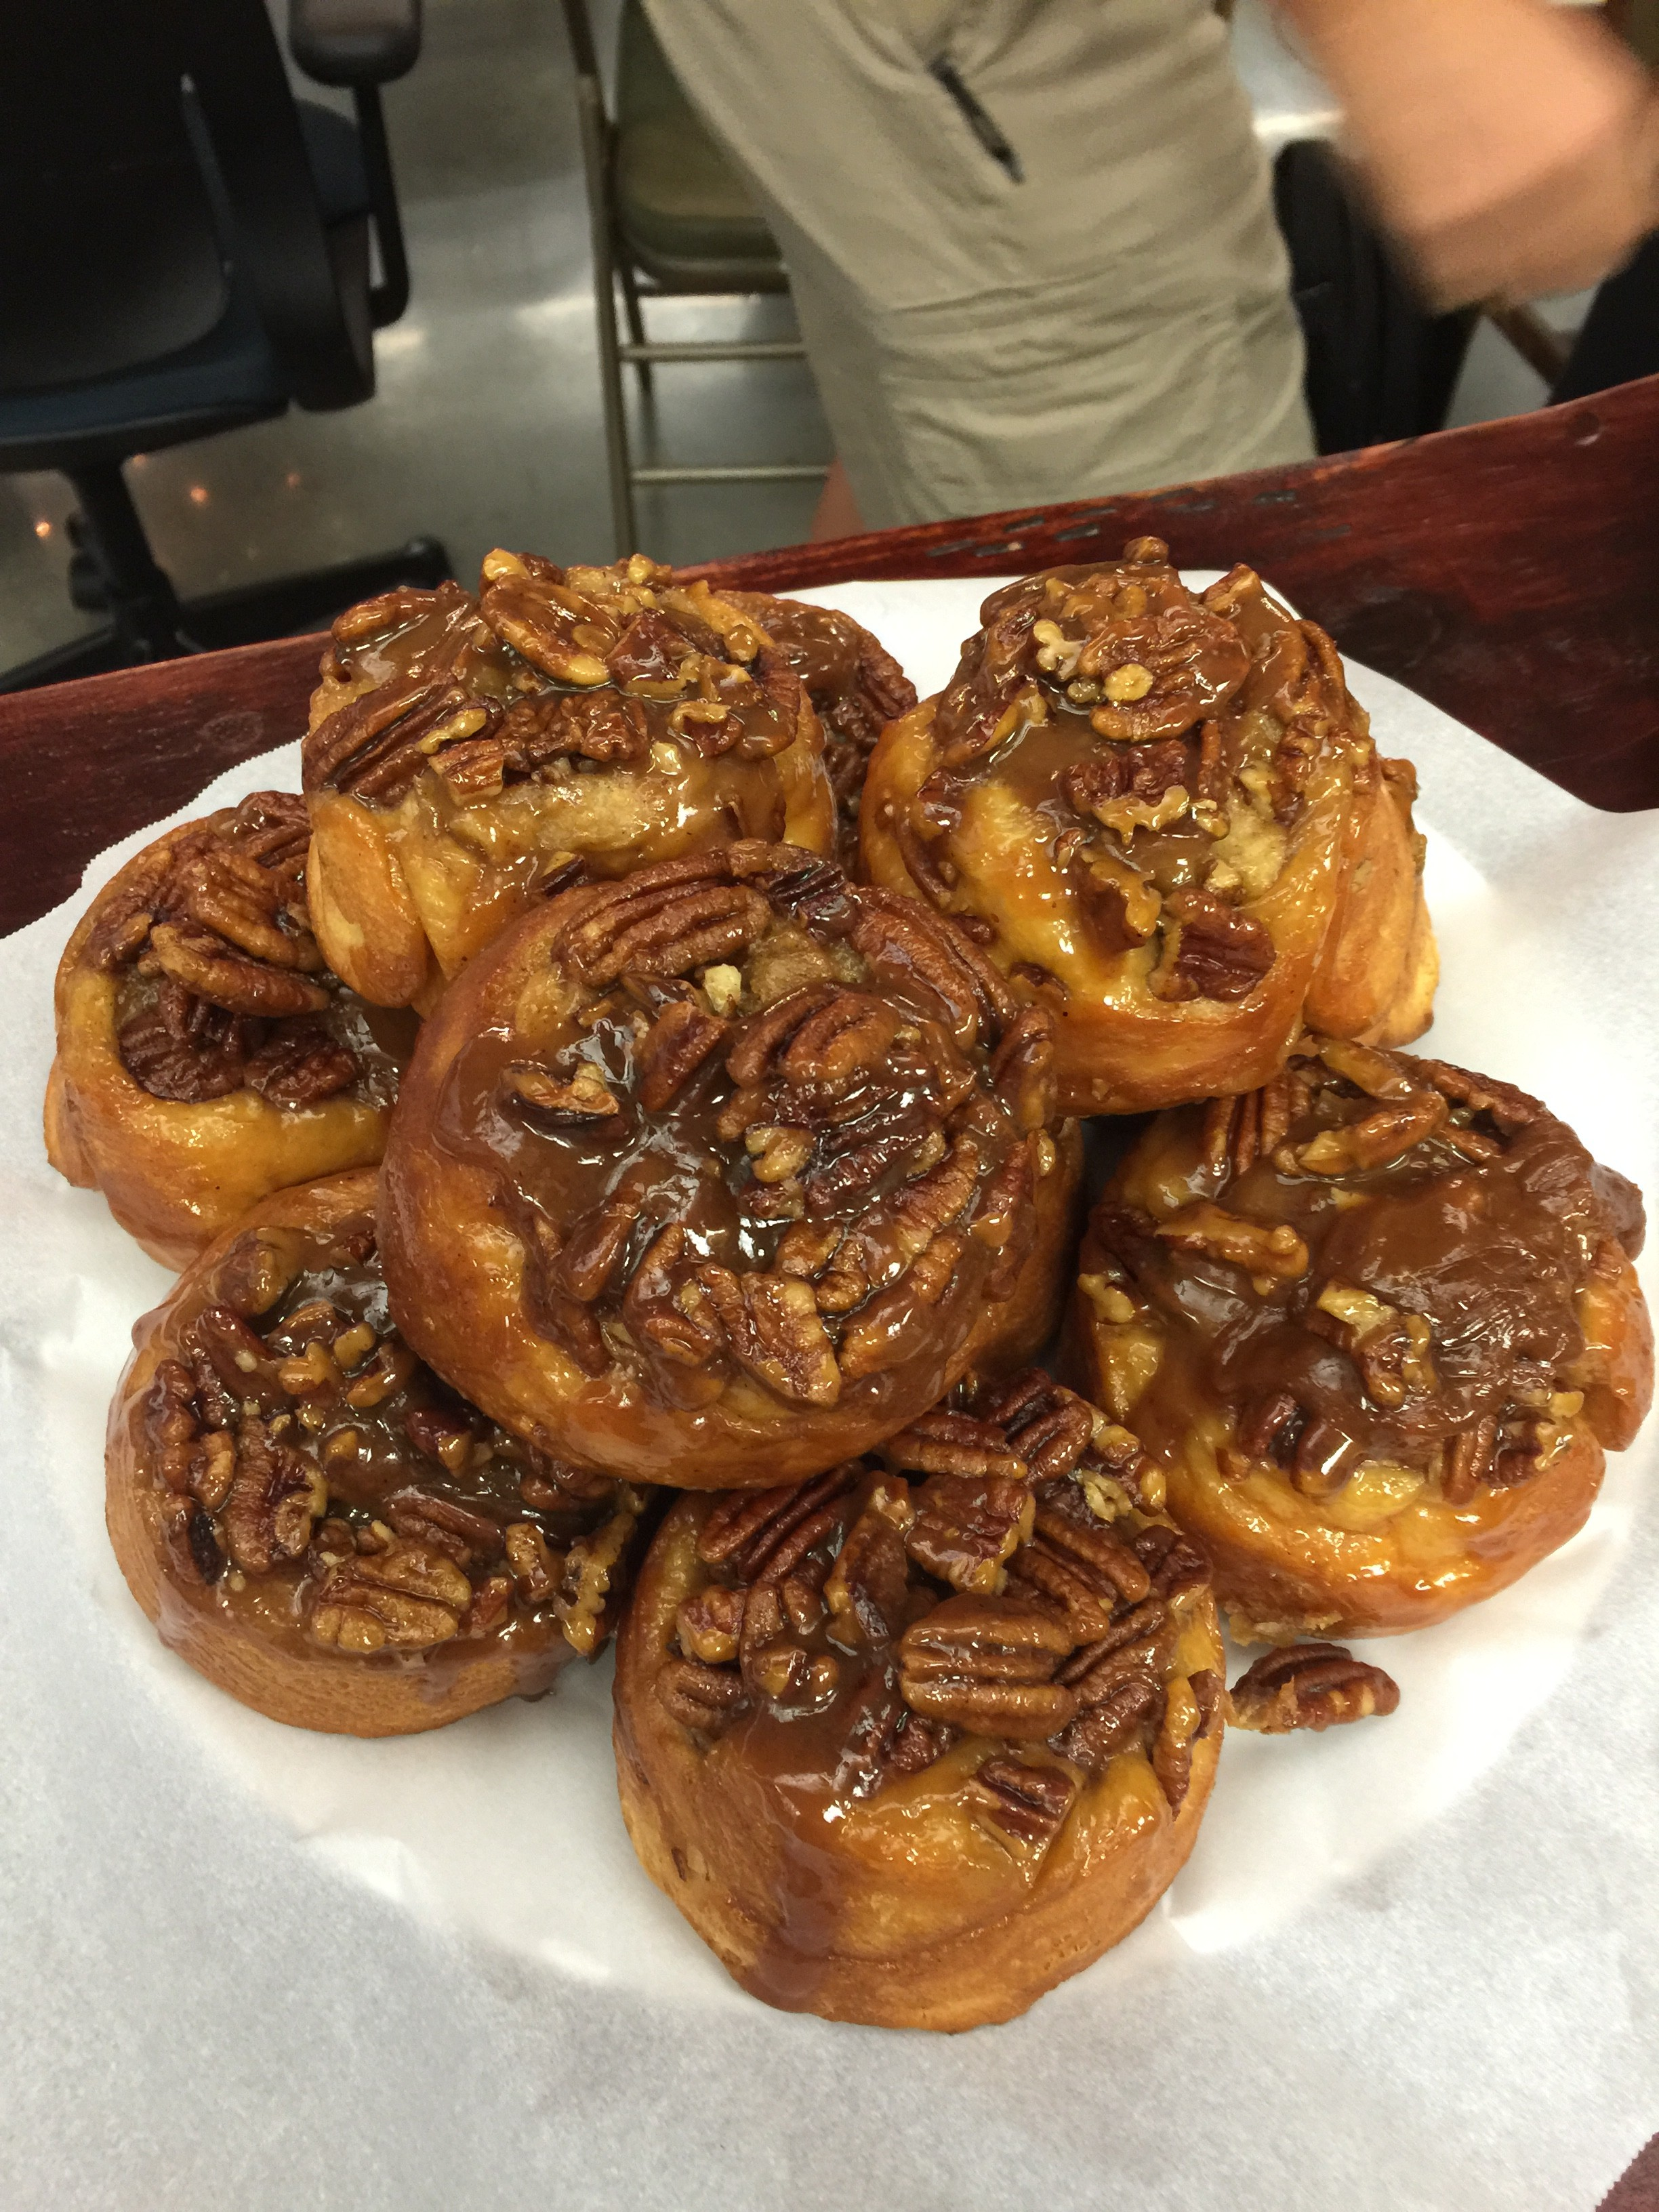 Pecan Rolls - Oh 4 Goodness Cakes - specialty cakes - pastries - rolls - pies - cookies - bread